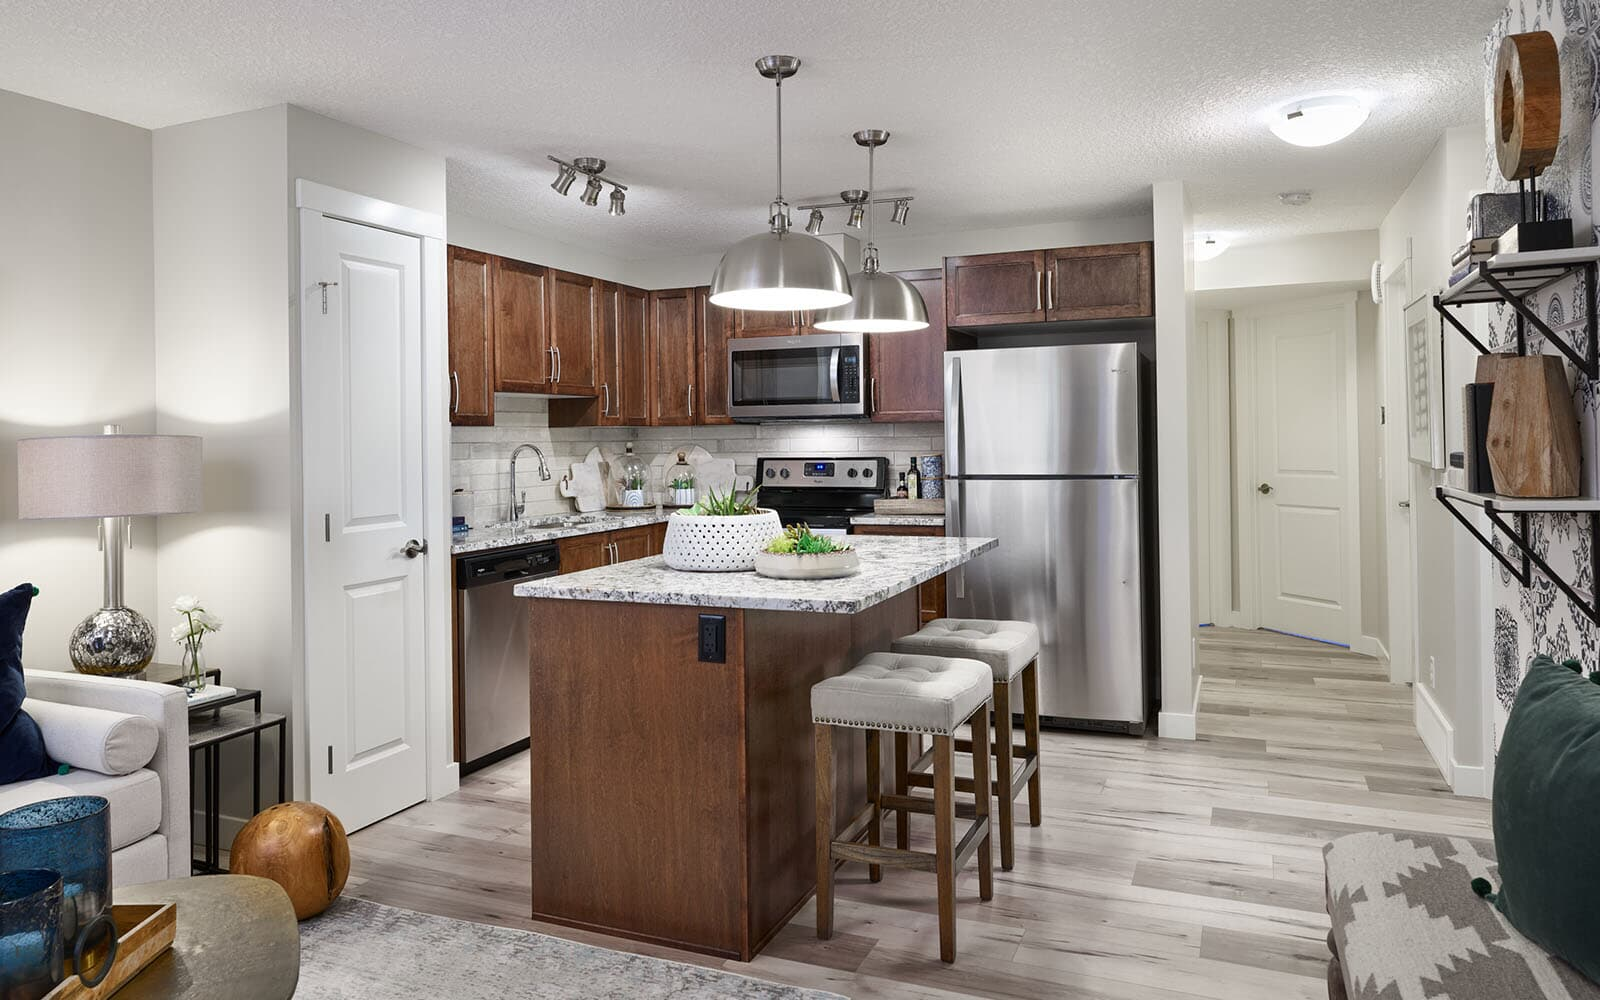 kitchen-ivory-octave-livingston-calgary-alberta